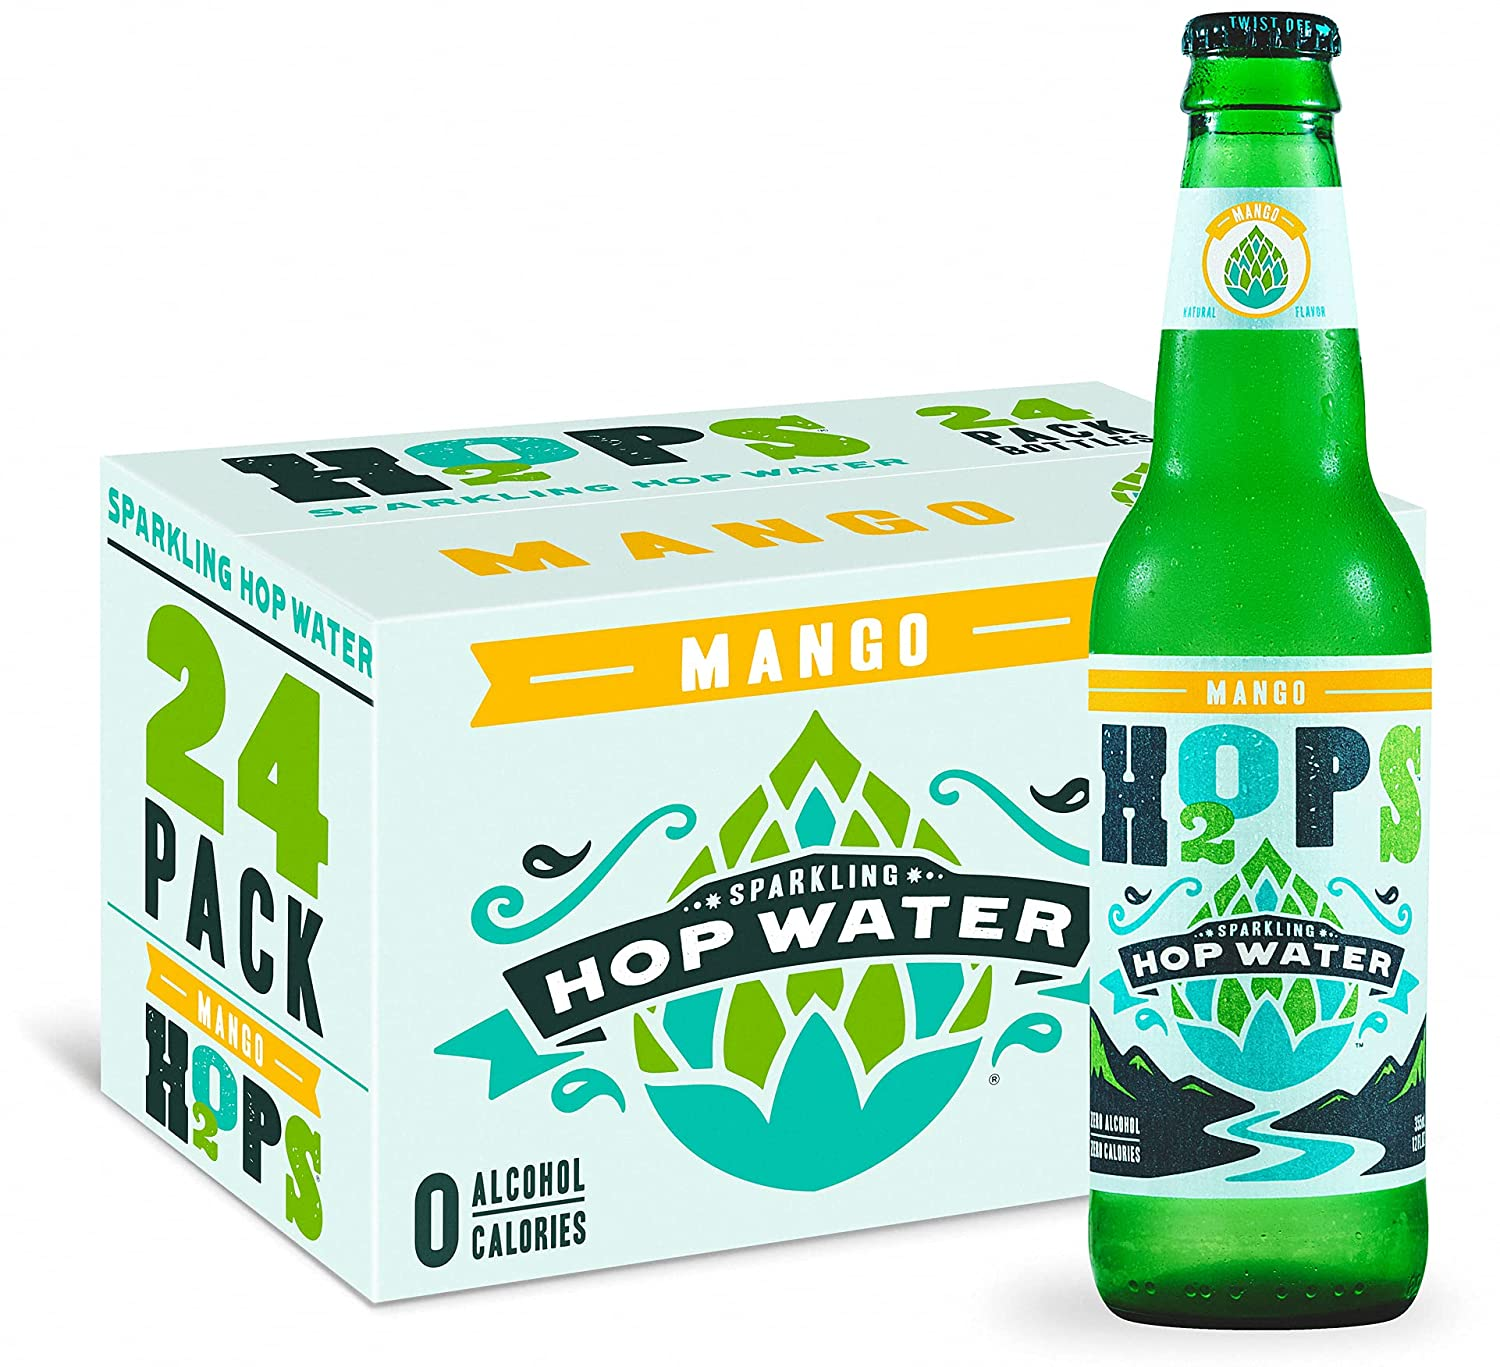 H2OPS Sparkling Ranking TOP19 Max 45% OFF Hop Water - Mango 24 Calorie Alcohol 0 Pac